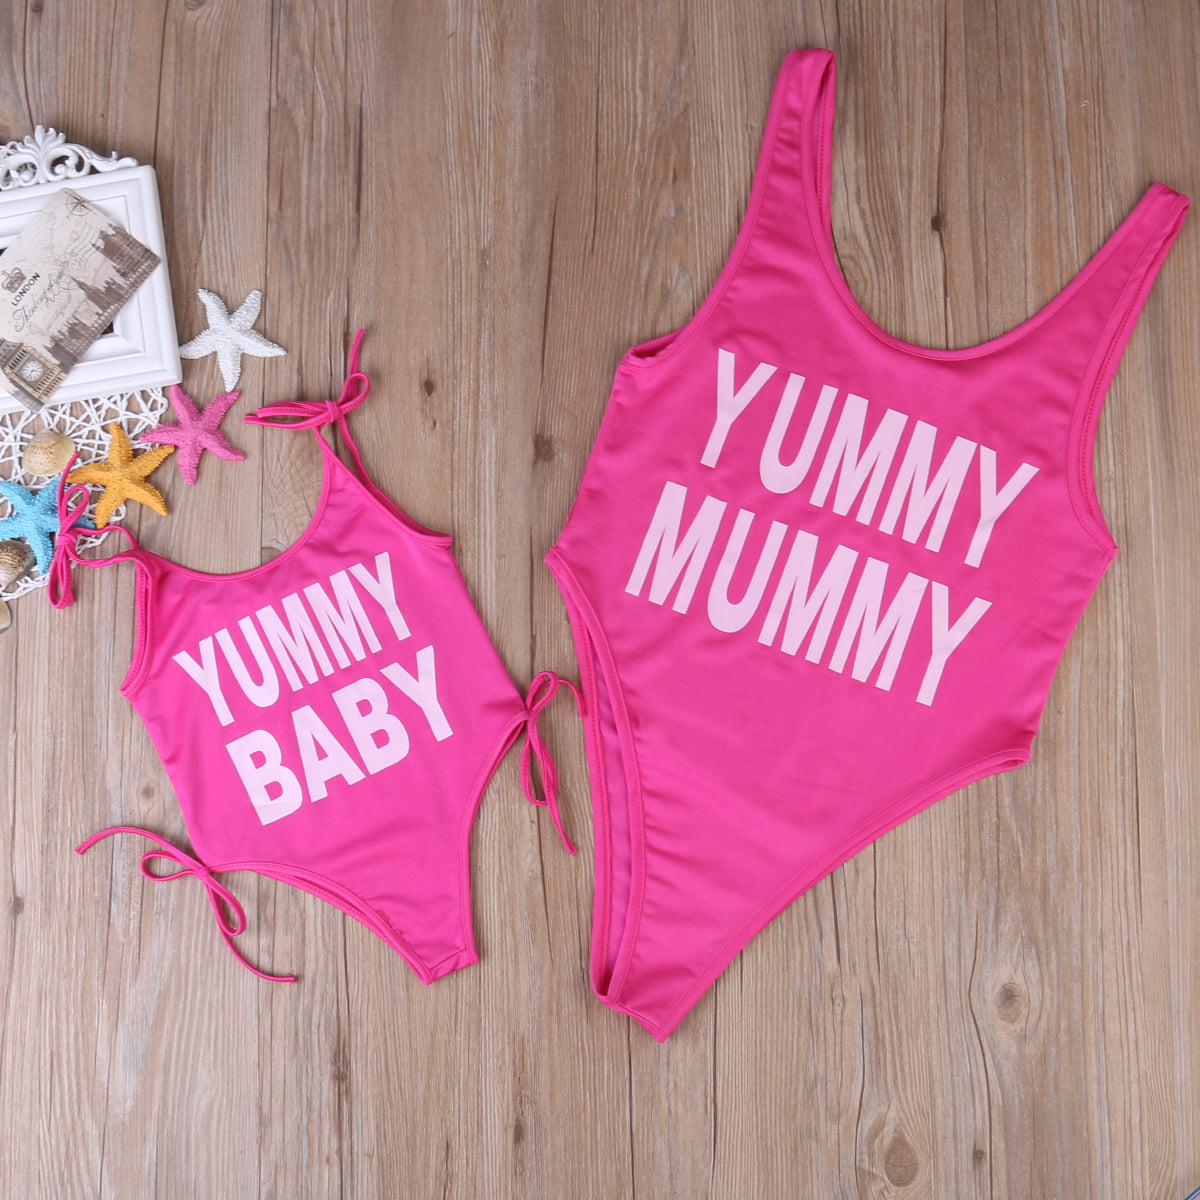 Yummy Mummy and Yummy Baby - One Piece Love